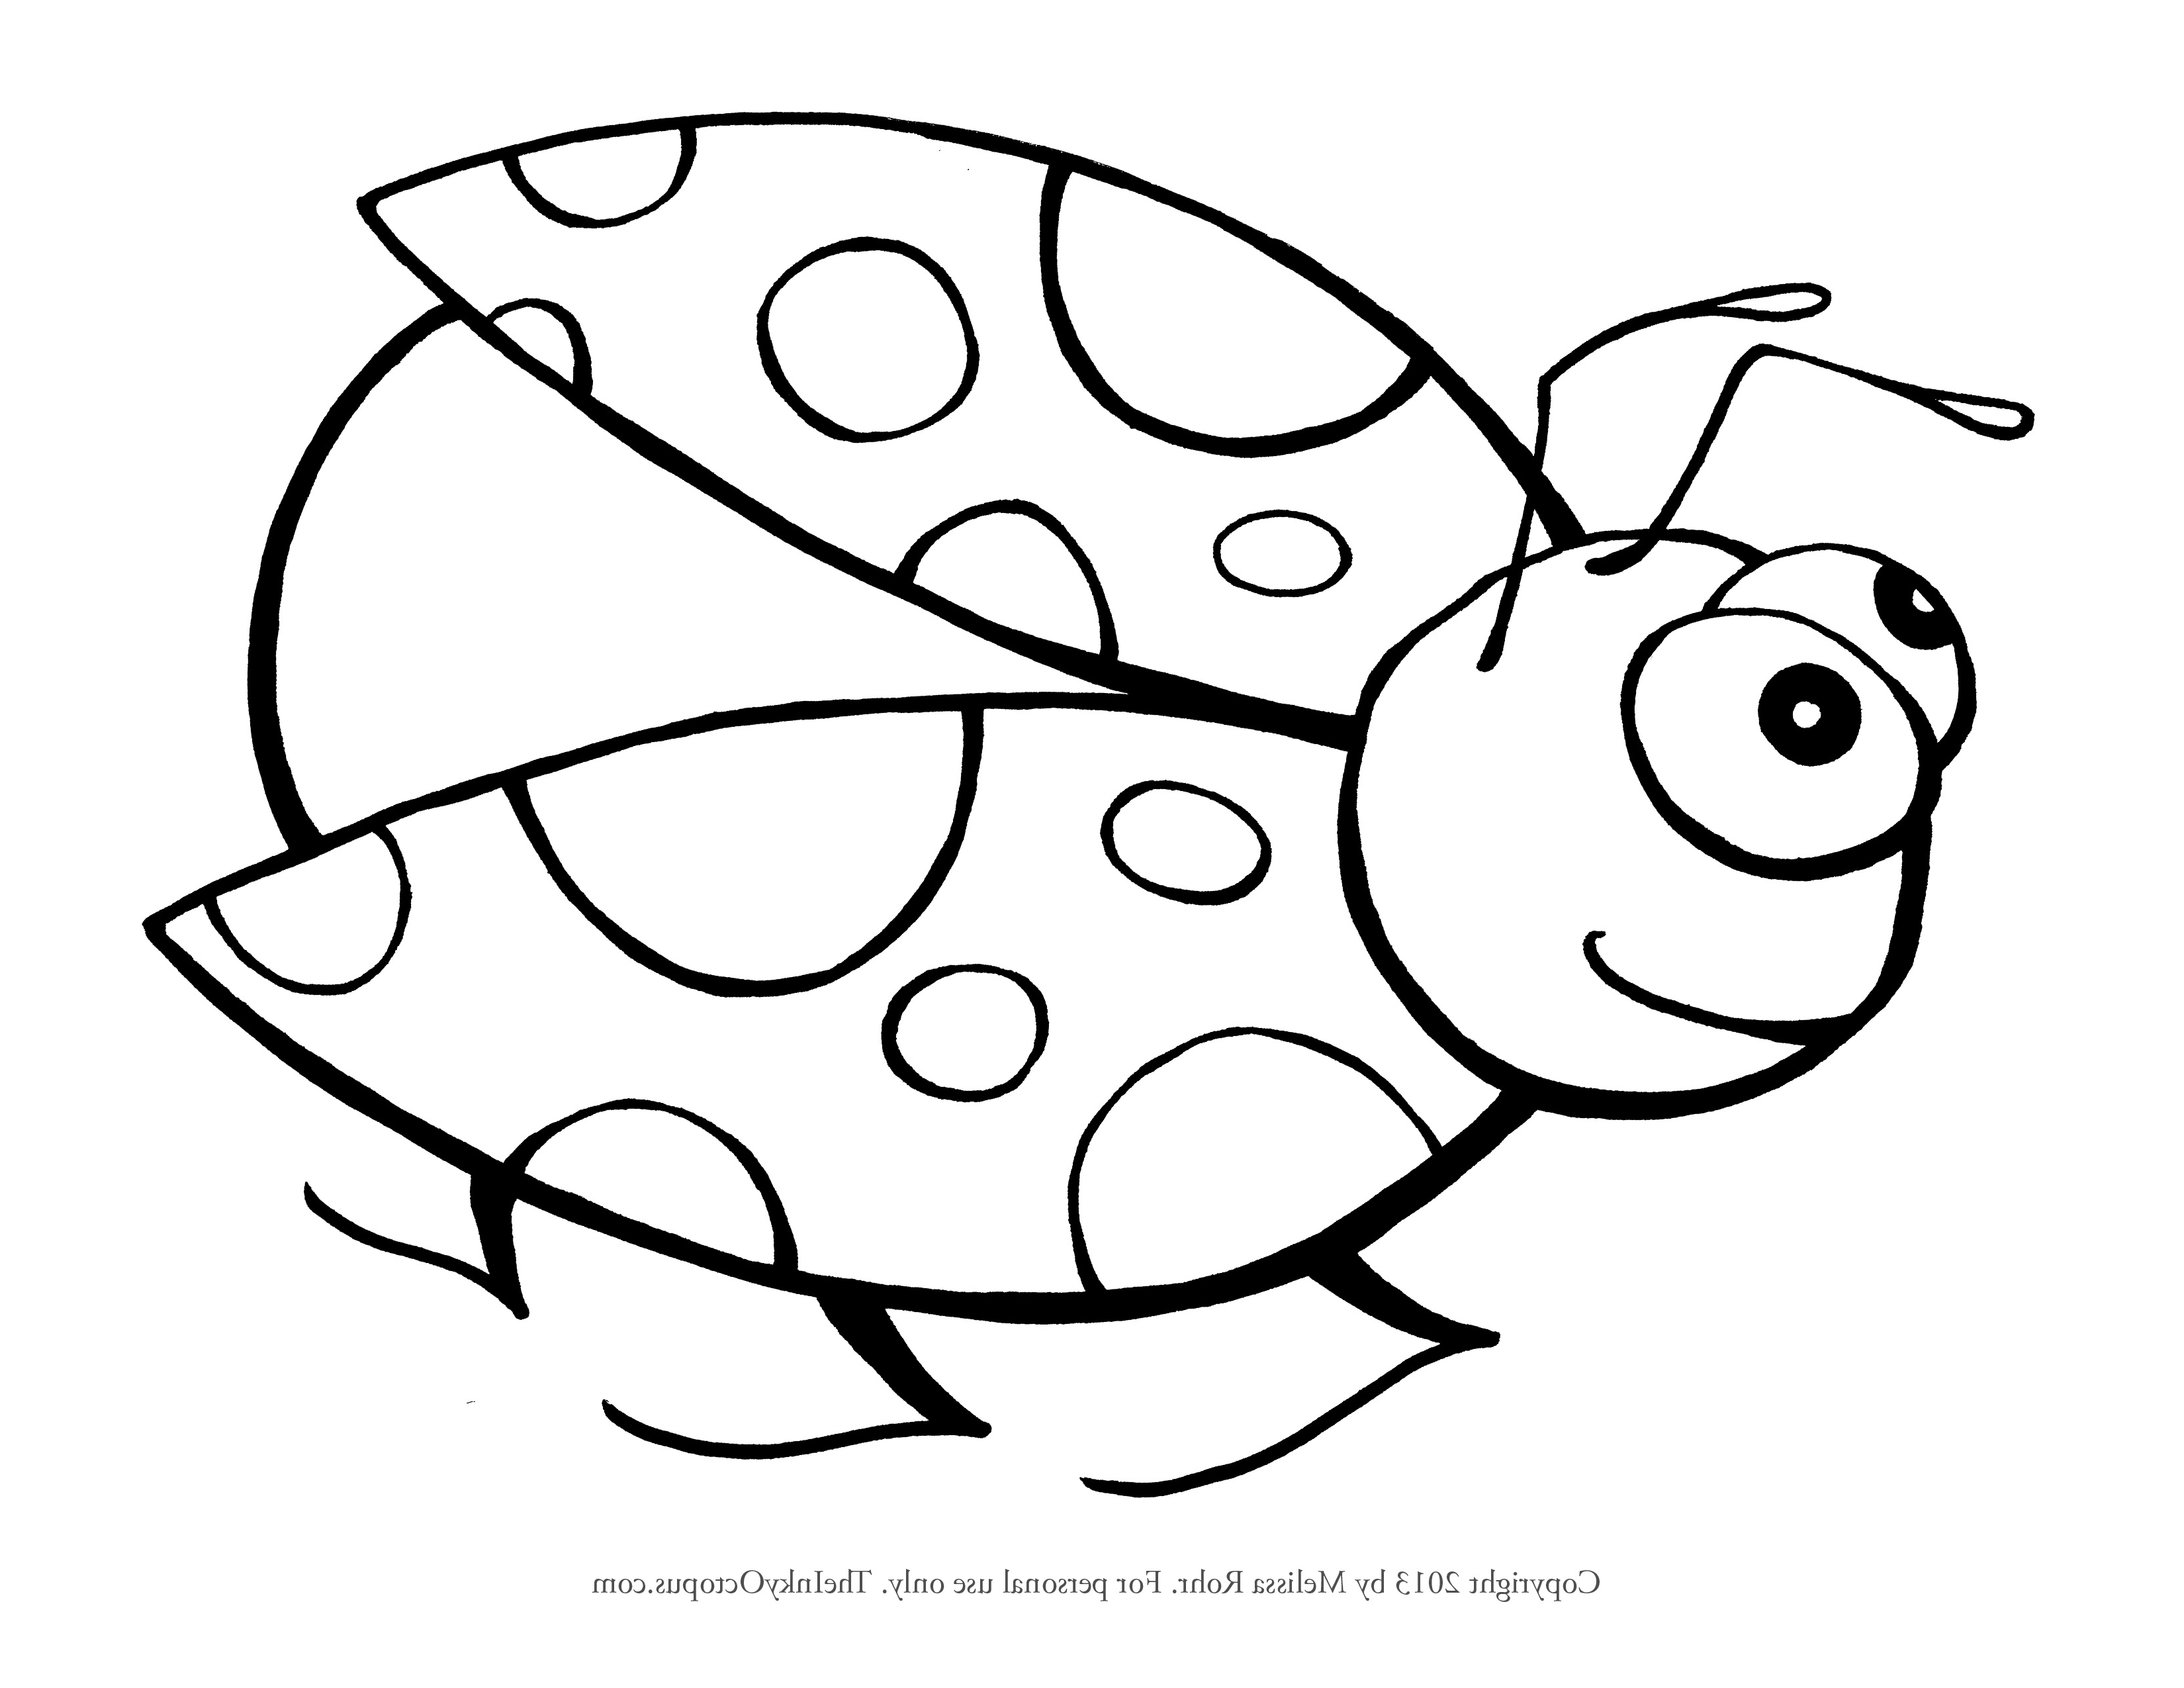 Cute Ladybug Drawing at GetDrawings.com | Free for personal use Cute ...